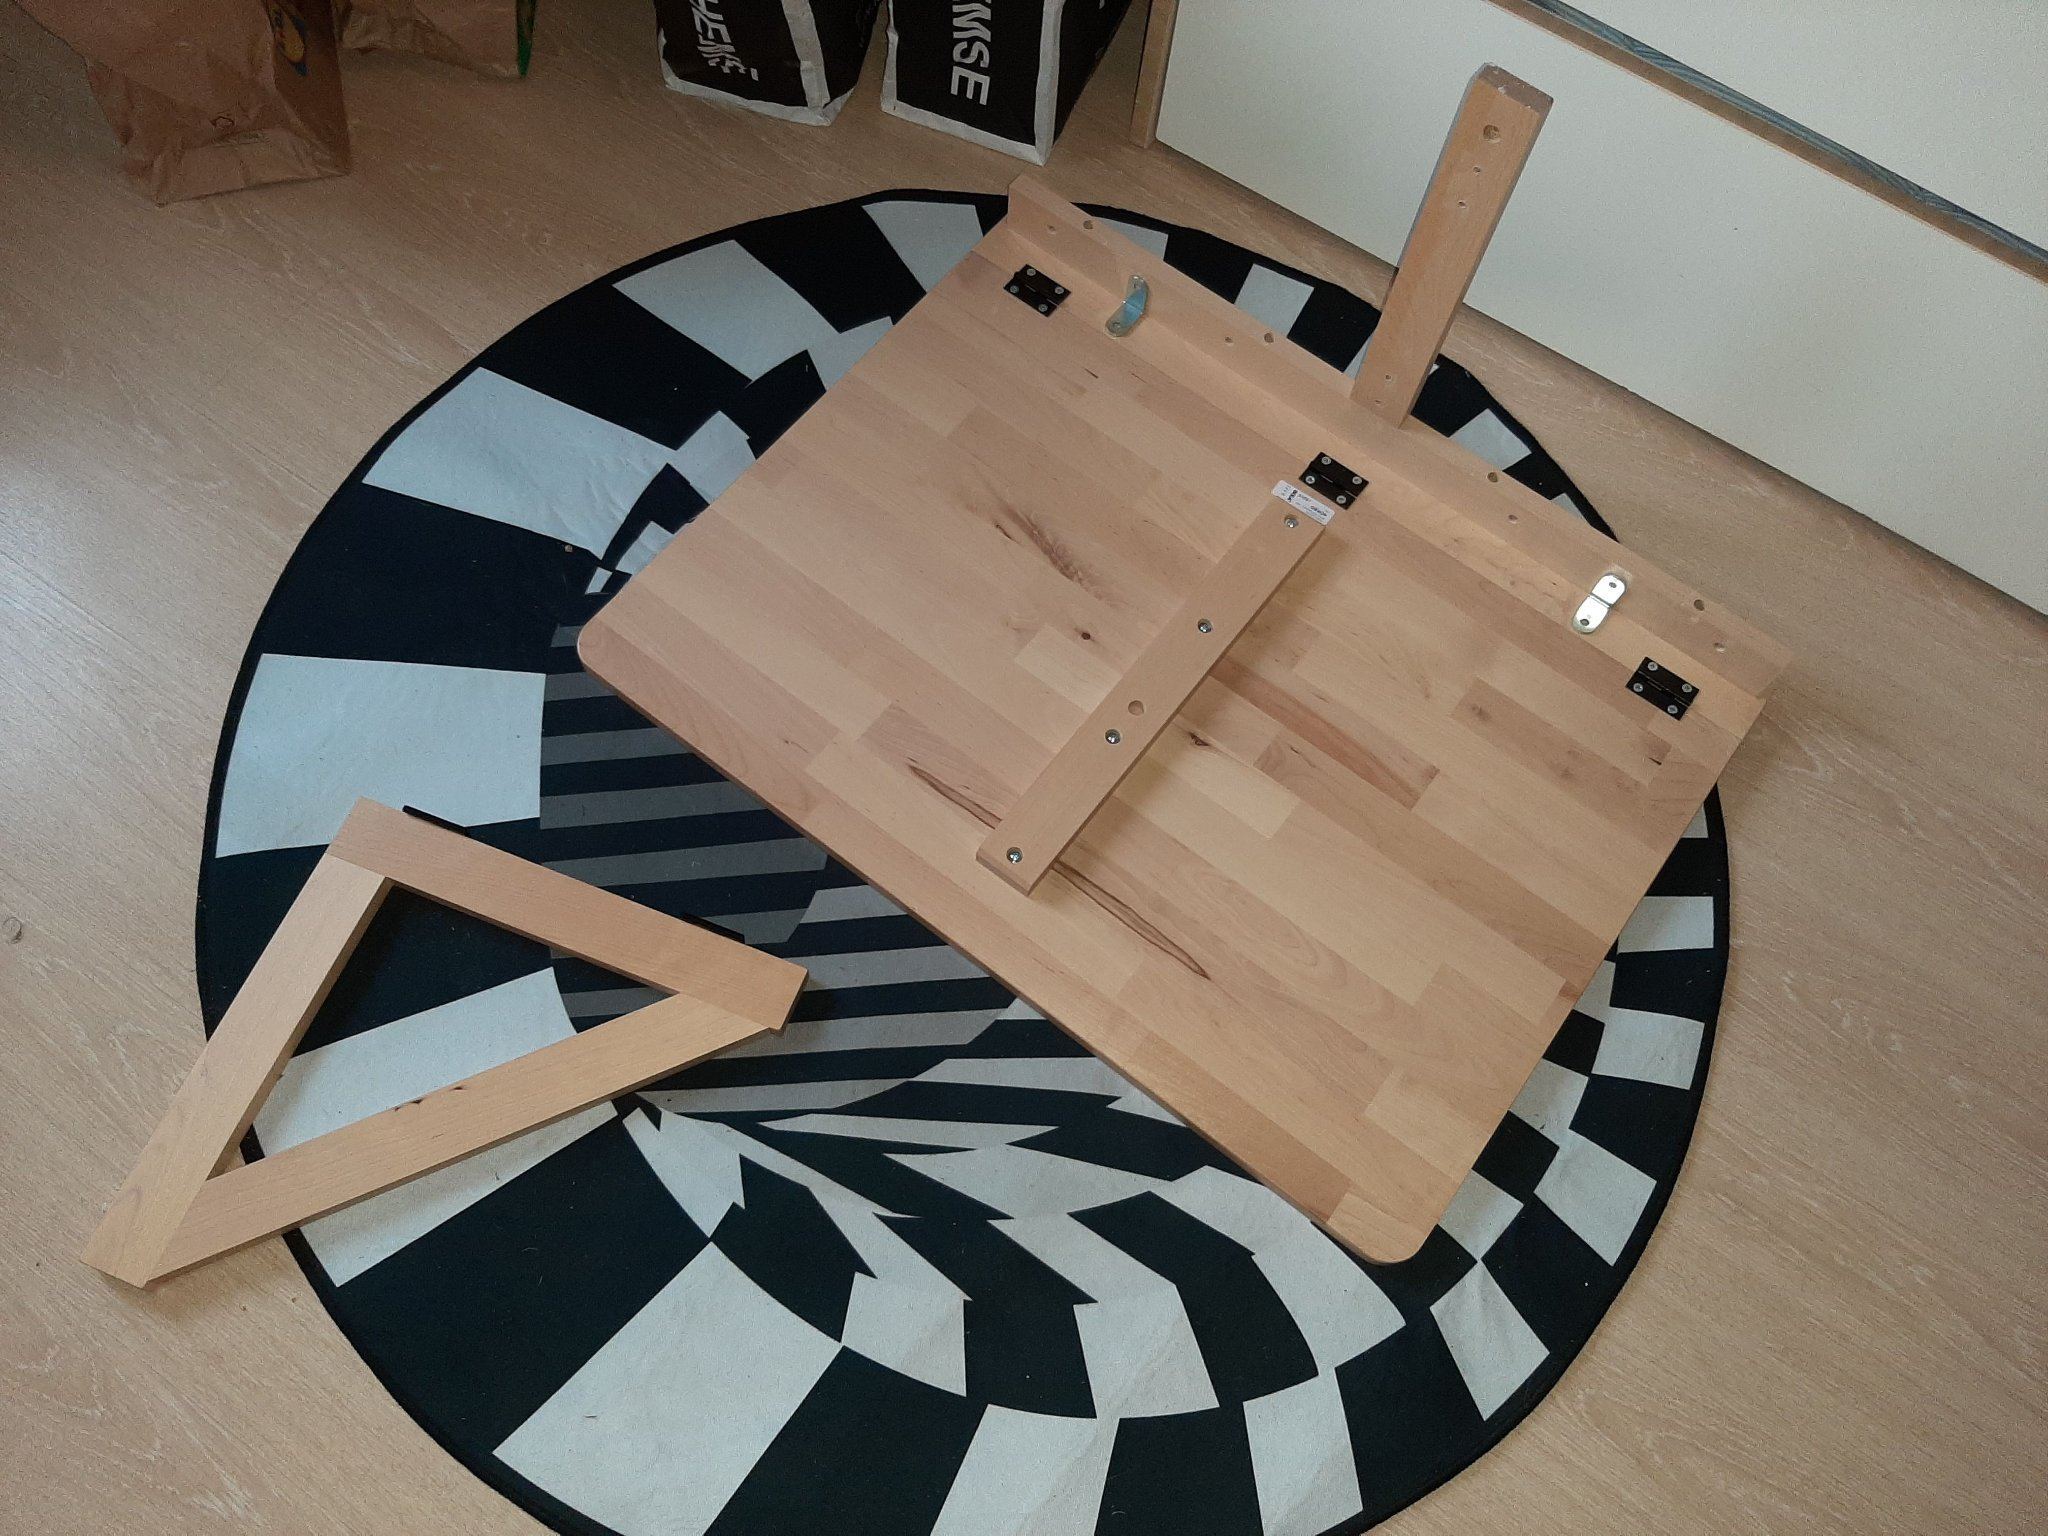 Picture of: Bord Vagghangt Ikea 428461758 ᐈ Kop Pa Tradera